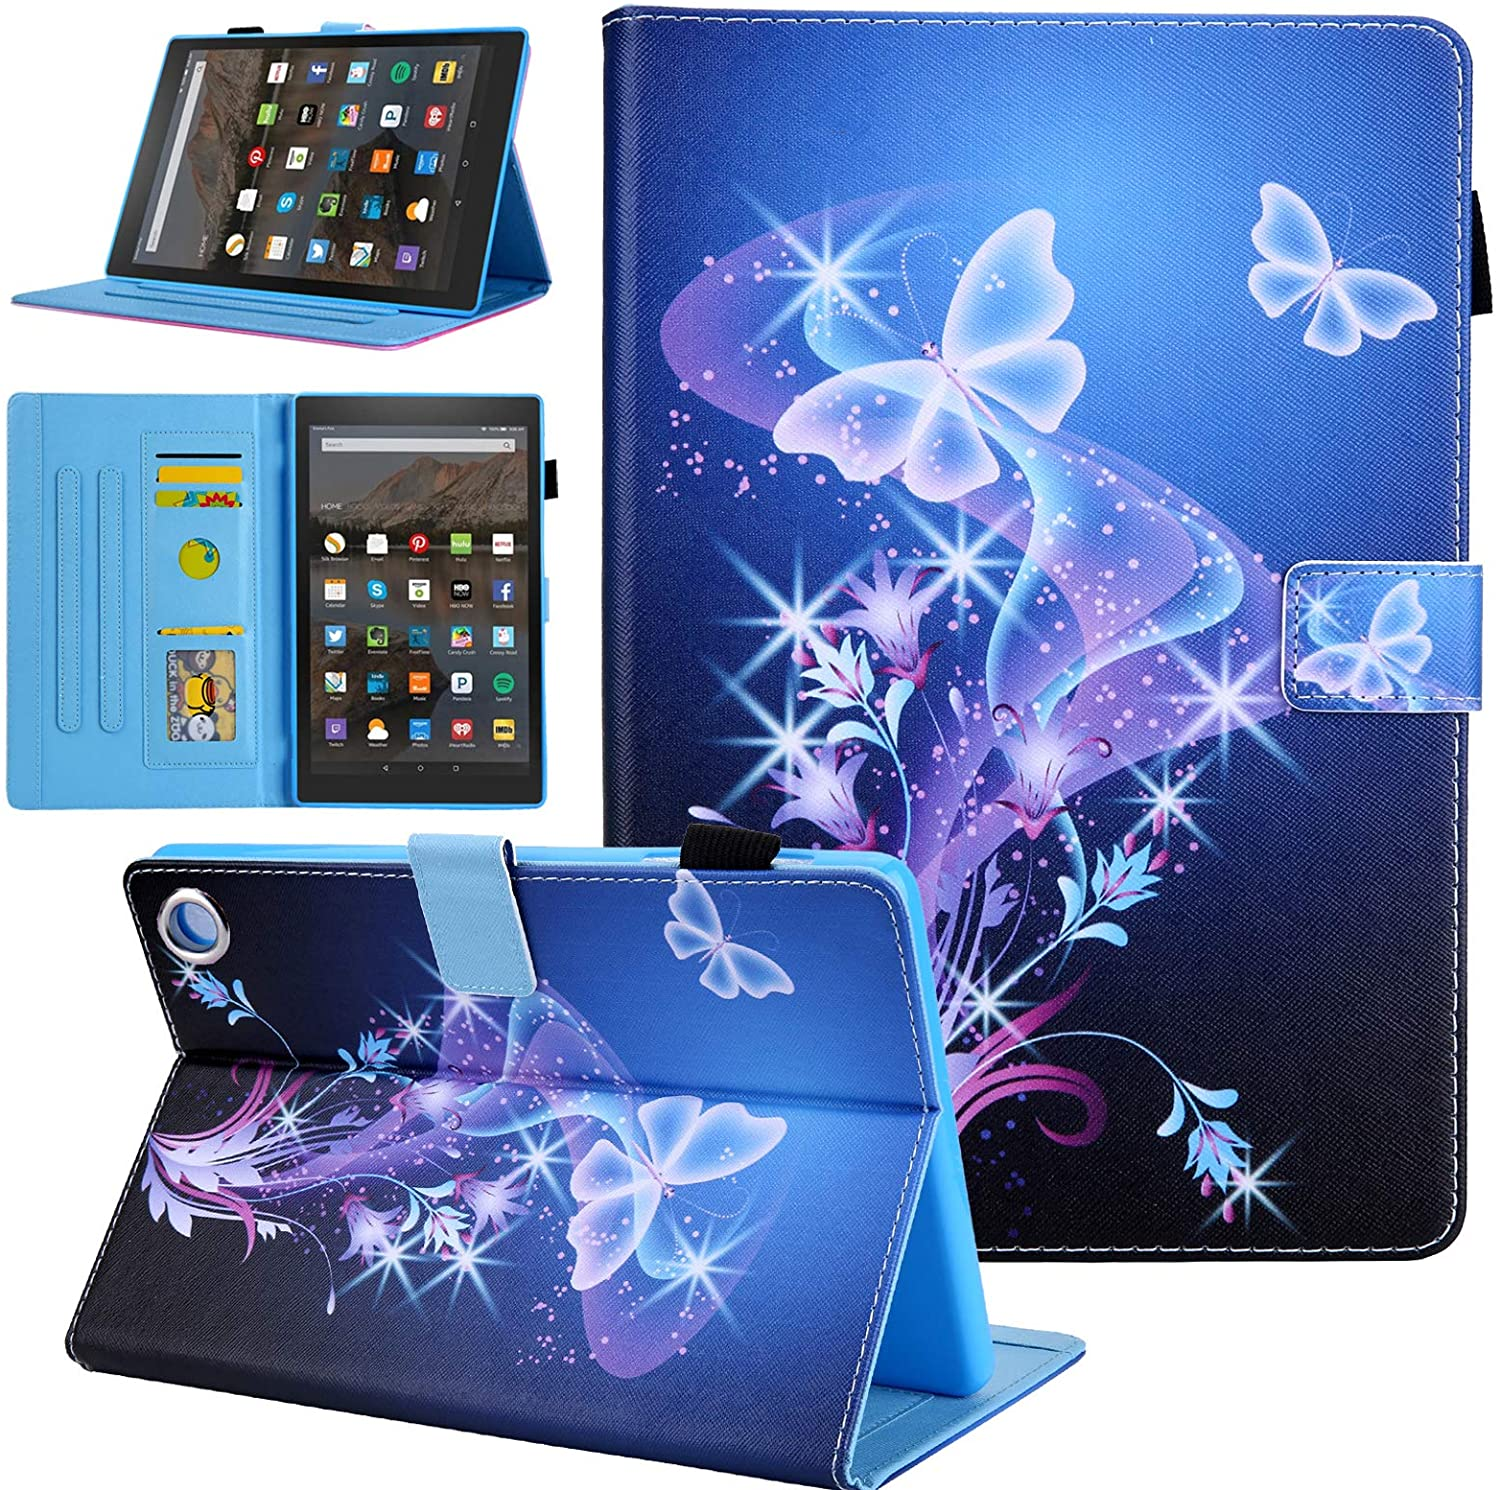 All-New Kindle Fire HD 8 Tablet Case, Case for Fire HD 8 10th Generation 2020 Release, Alugs Full Body Protective PU Leather Smart Stand Folio Cover for Fire HD 8 / HD 8 Plus 2020, Butterfly